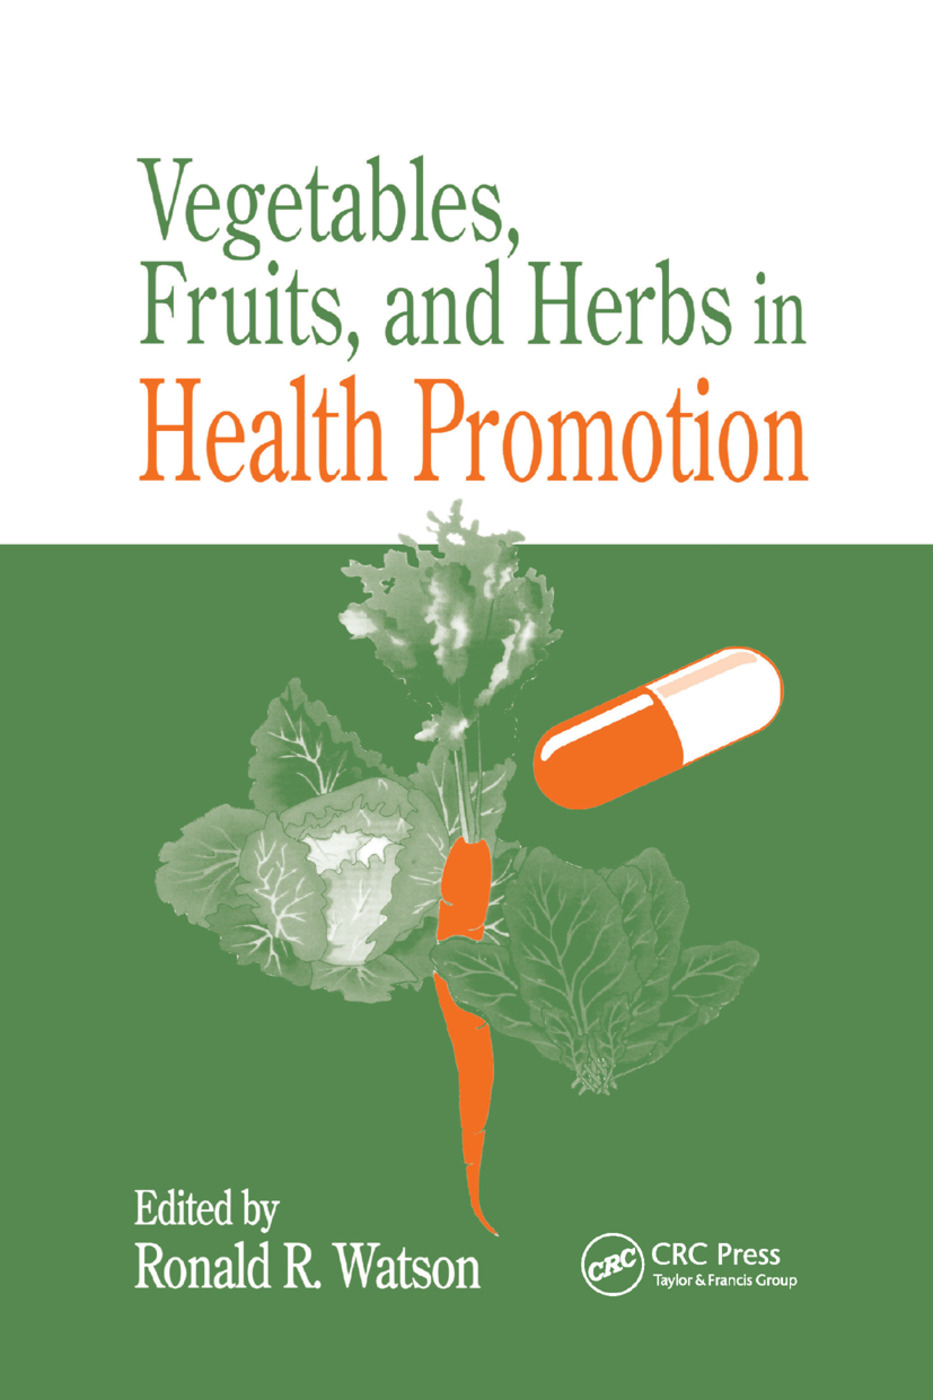 Vegetables, Fruits, and Herbs in Health Promotion: 1st Edition (Paperback) book cover